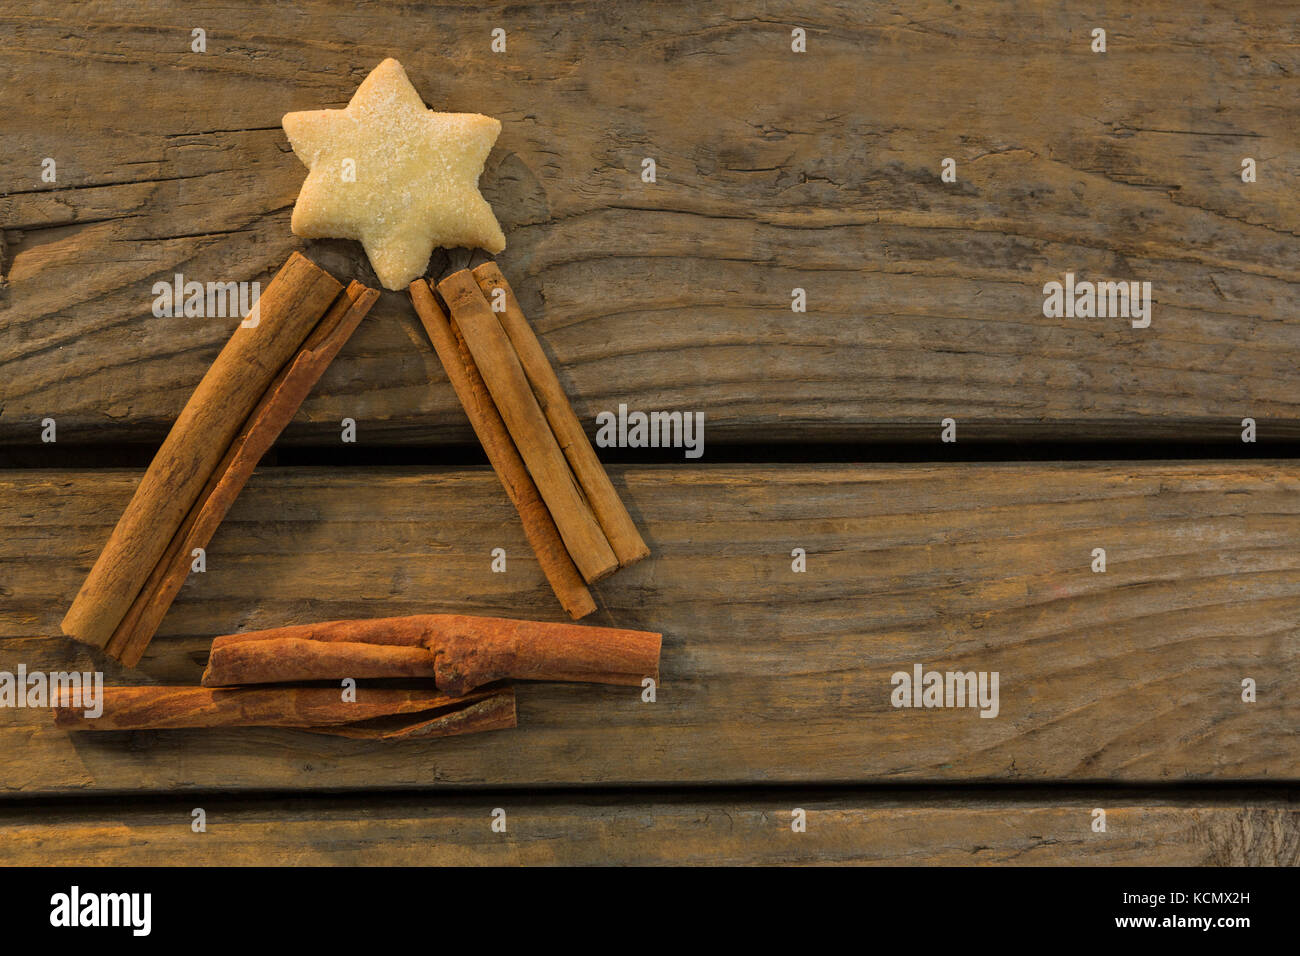 Overhead View Of Star Shape Cookie With Cinnamon Sticks On Wooden